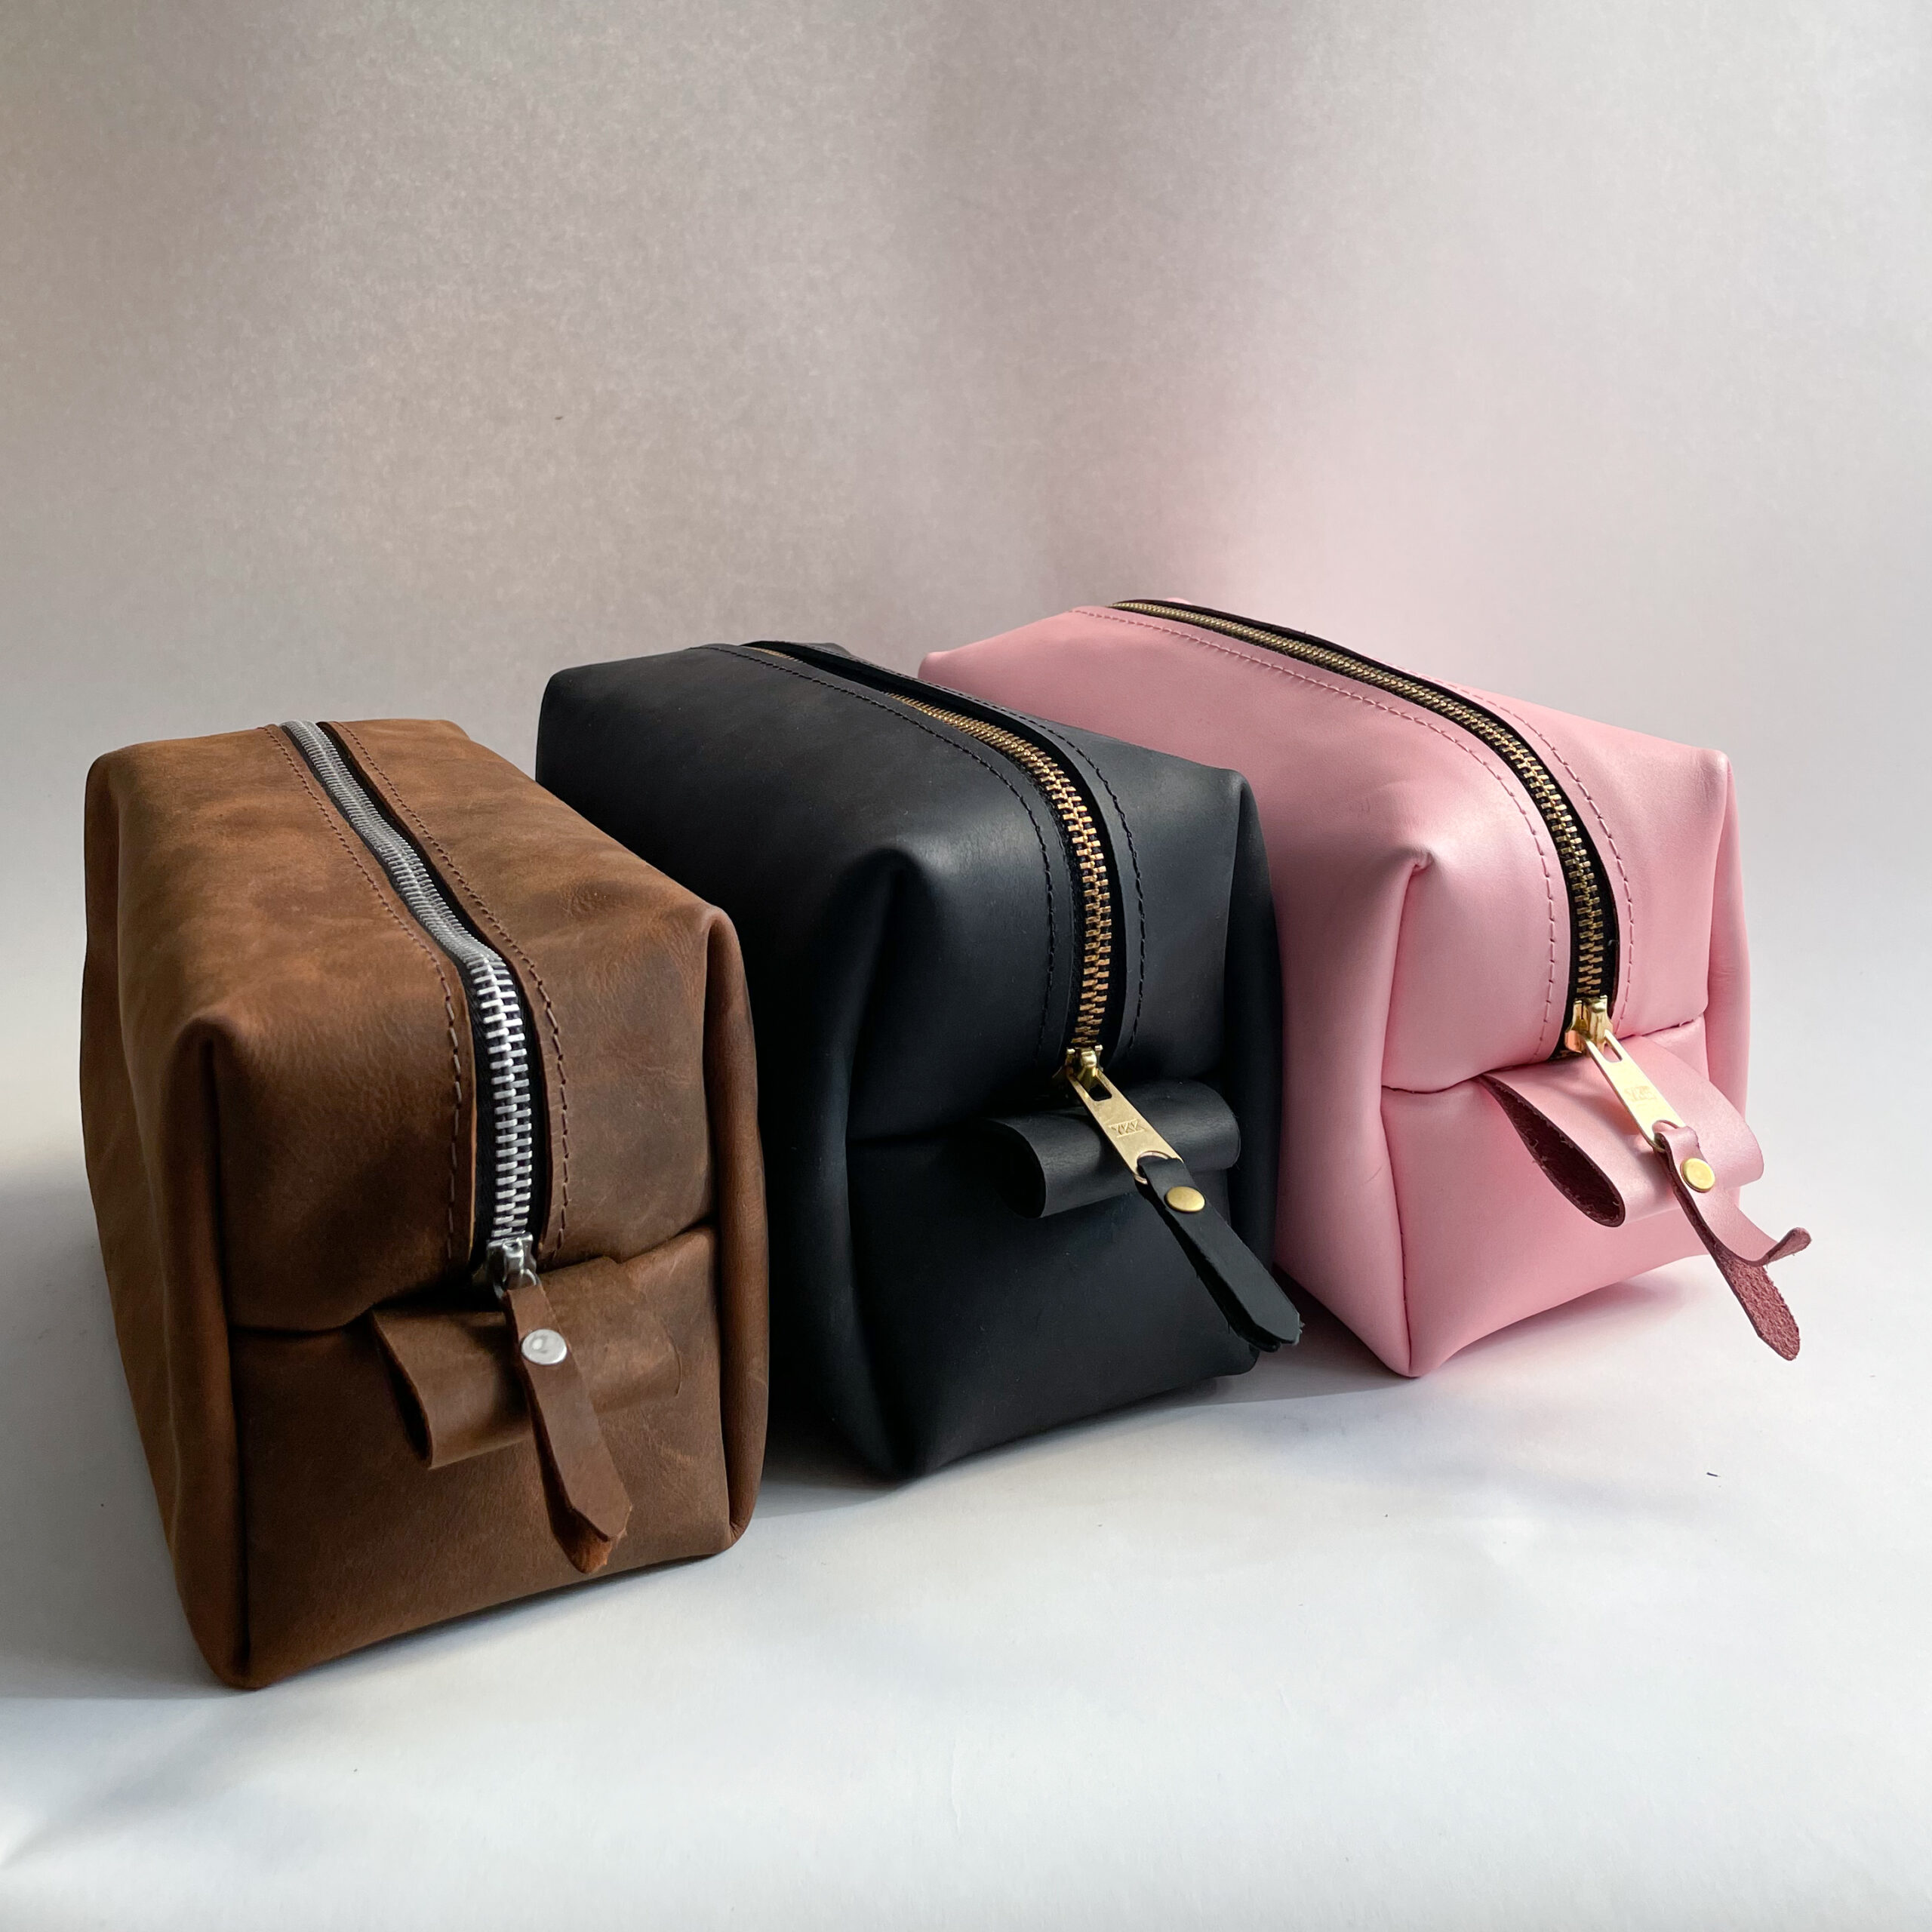 Three leather dopp kits, sitting side by side, (brown, black, pink, from left to right)